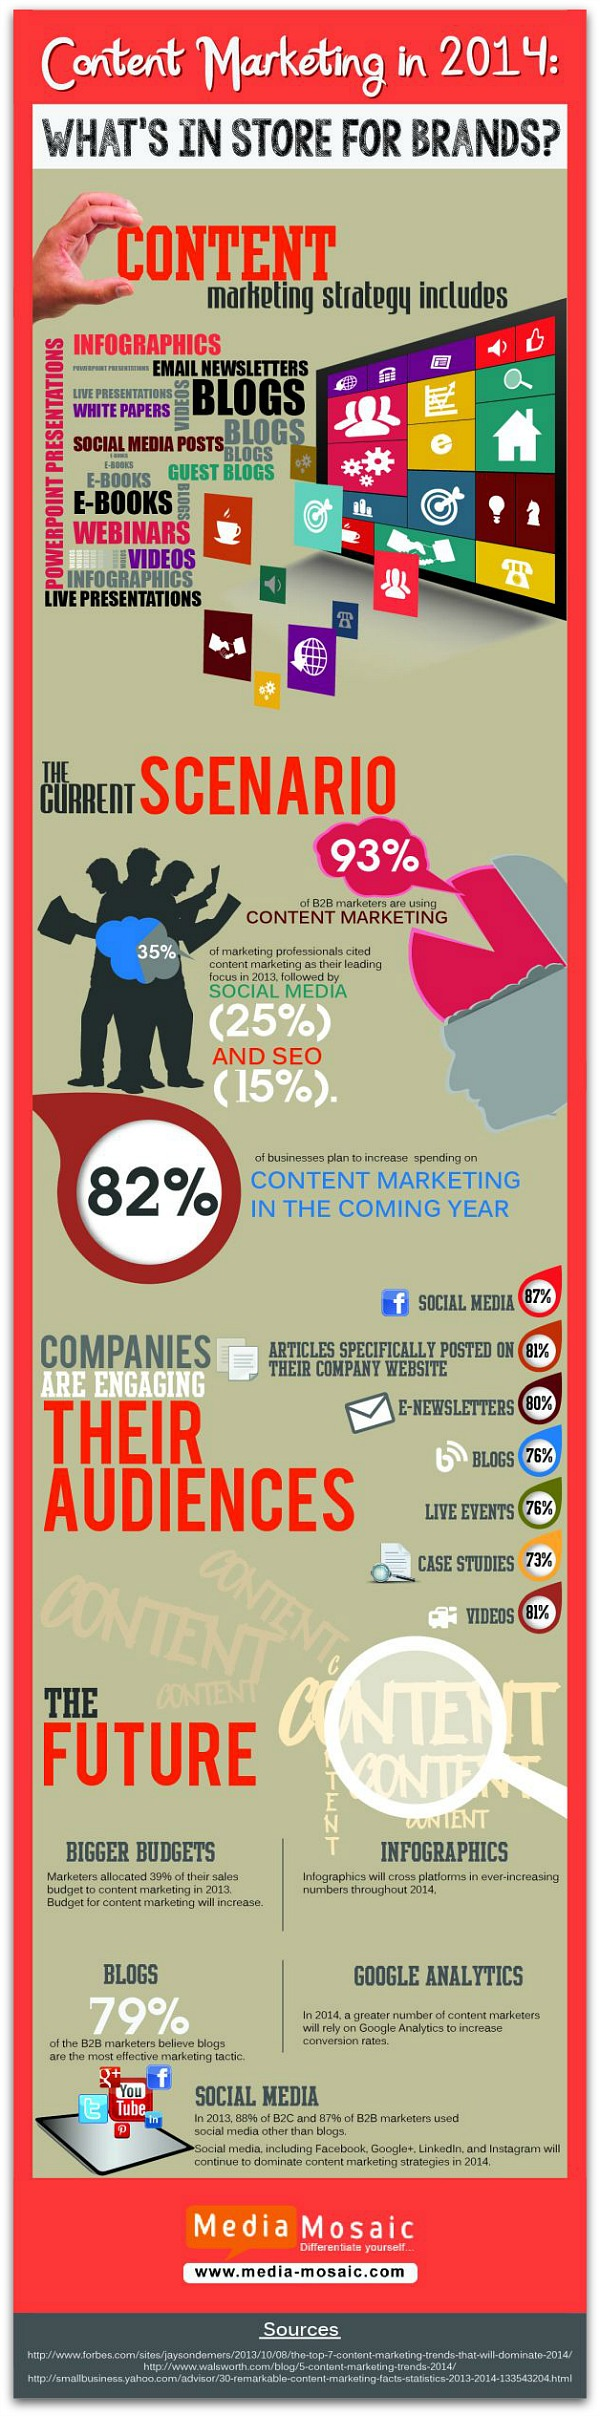 Future_of_Content_Marketing_2014_Infographic